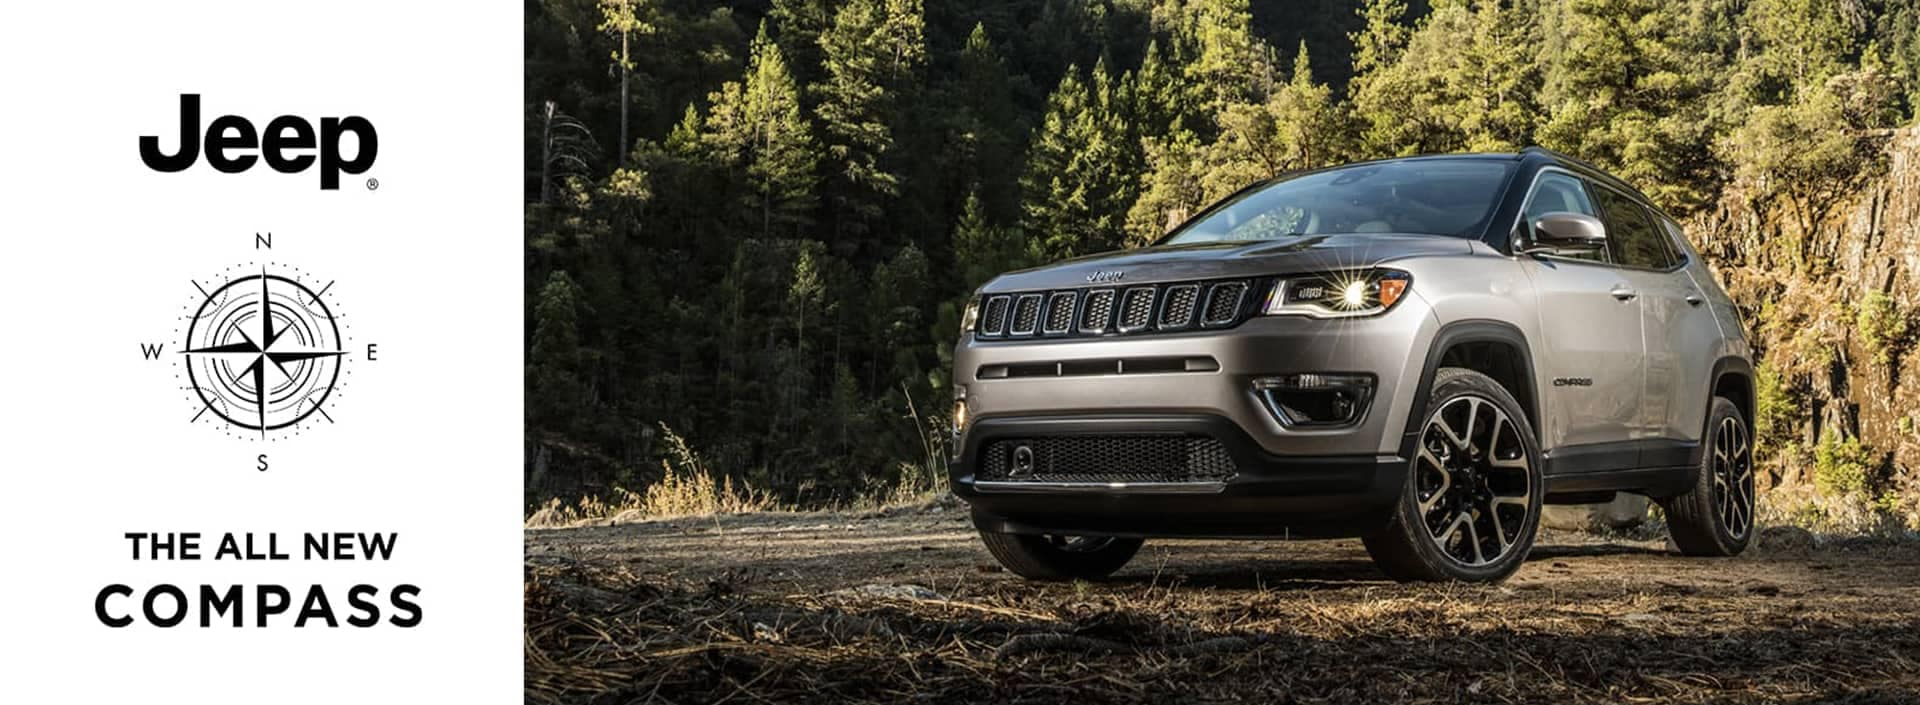 Generic-Jeep-Compass-Desktop